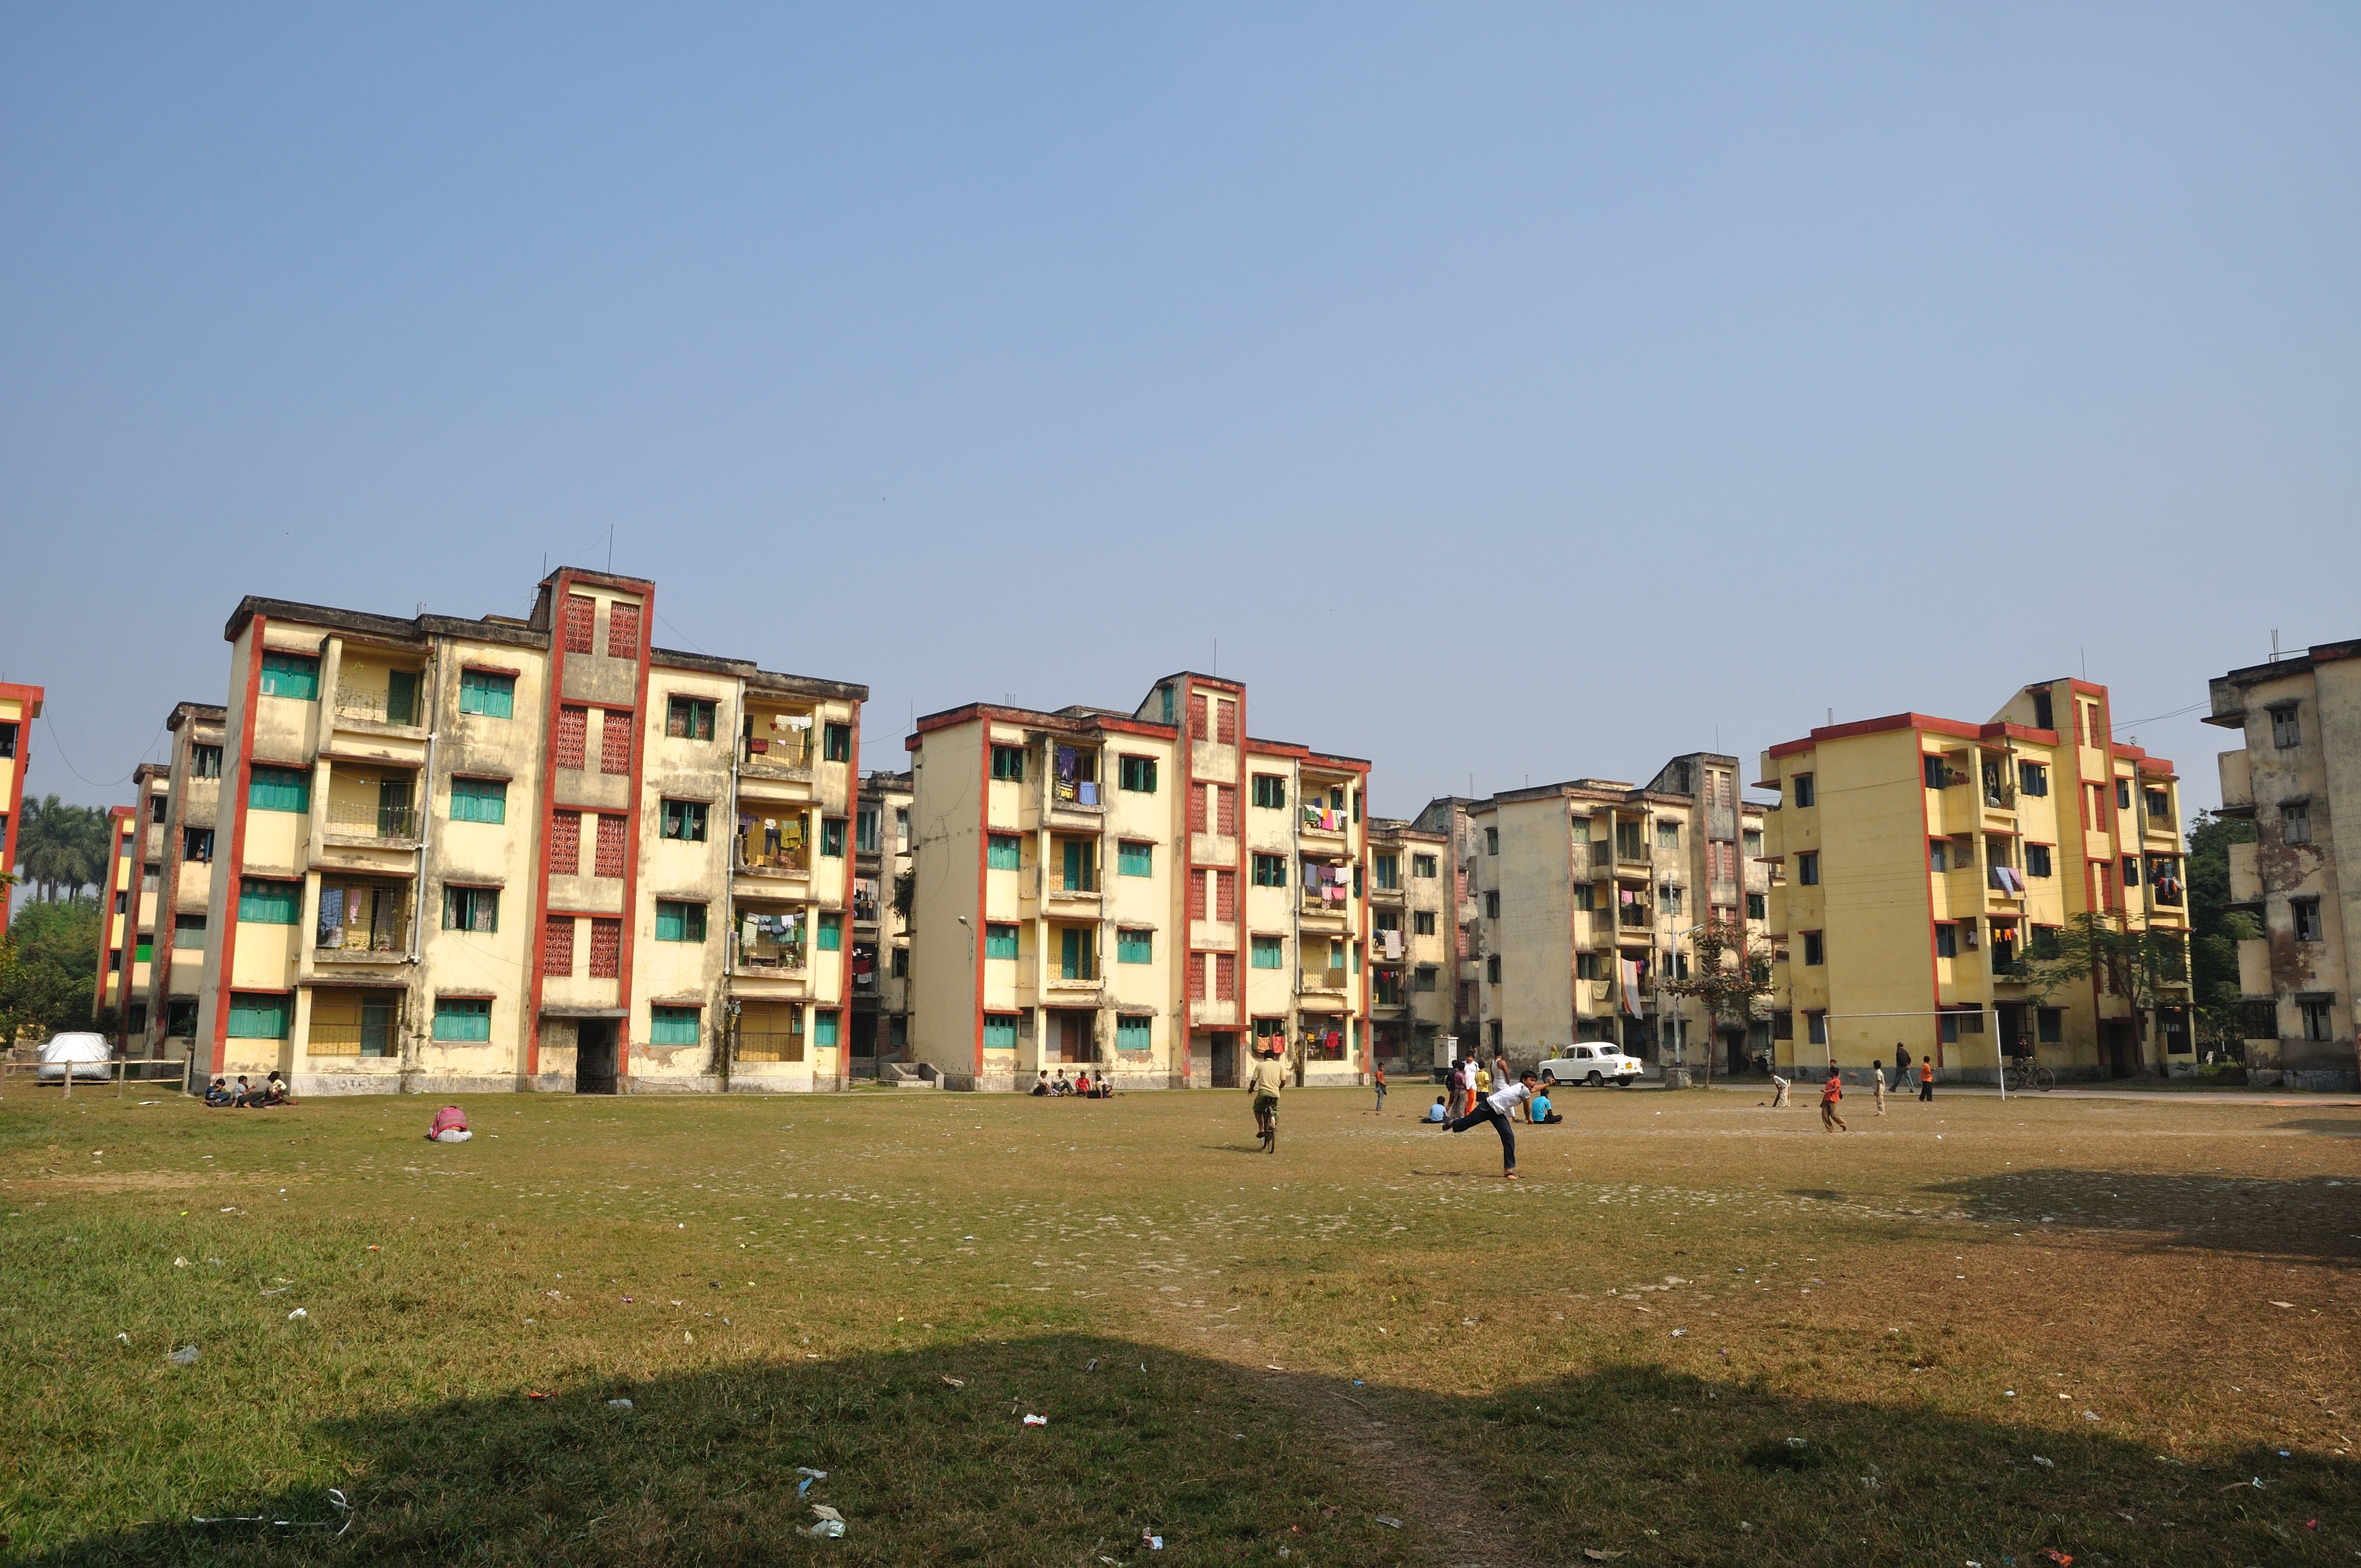 File Government Of West Bengal Rental Housing Estate Howrah 2011 01 08 9920 Jpg Wikimedia